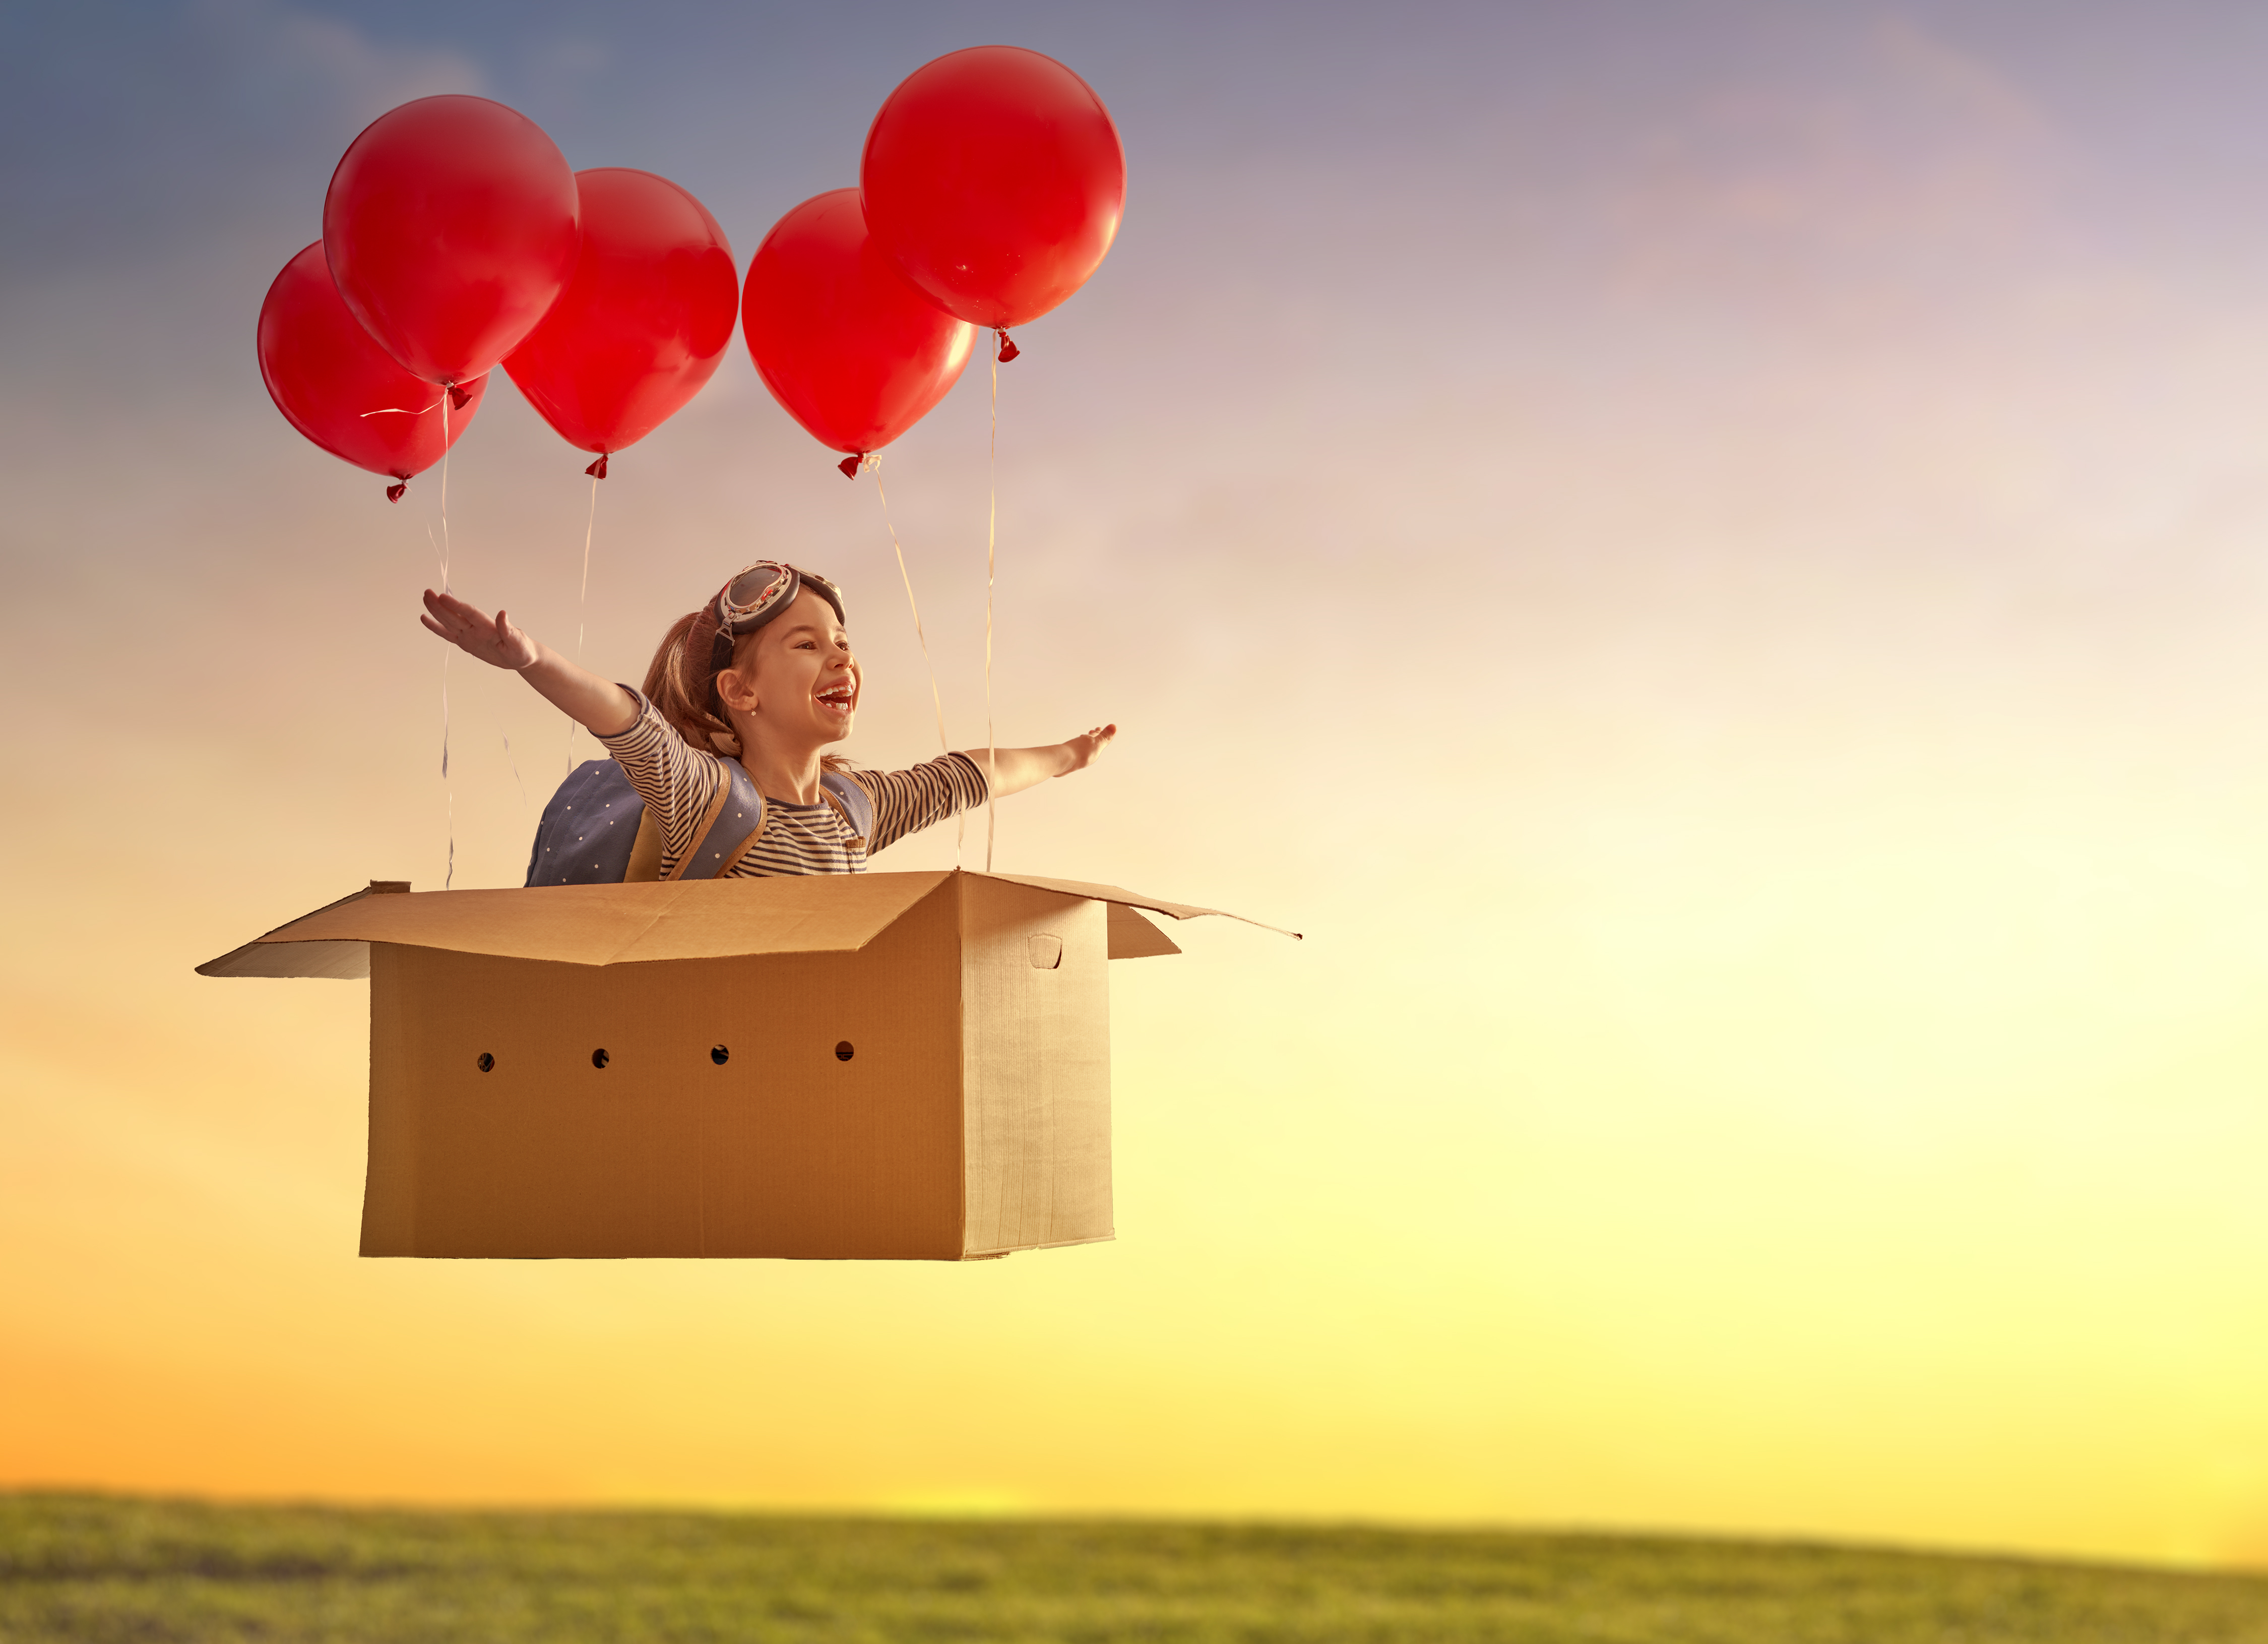 Dreams of travel! Child is flying in cardboard box with air balloons.